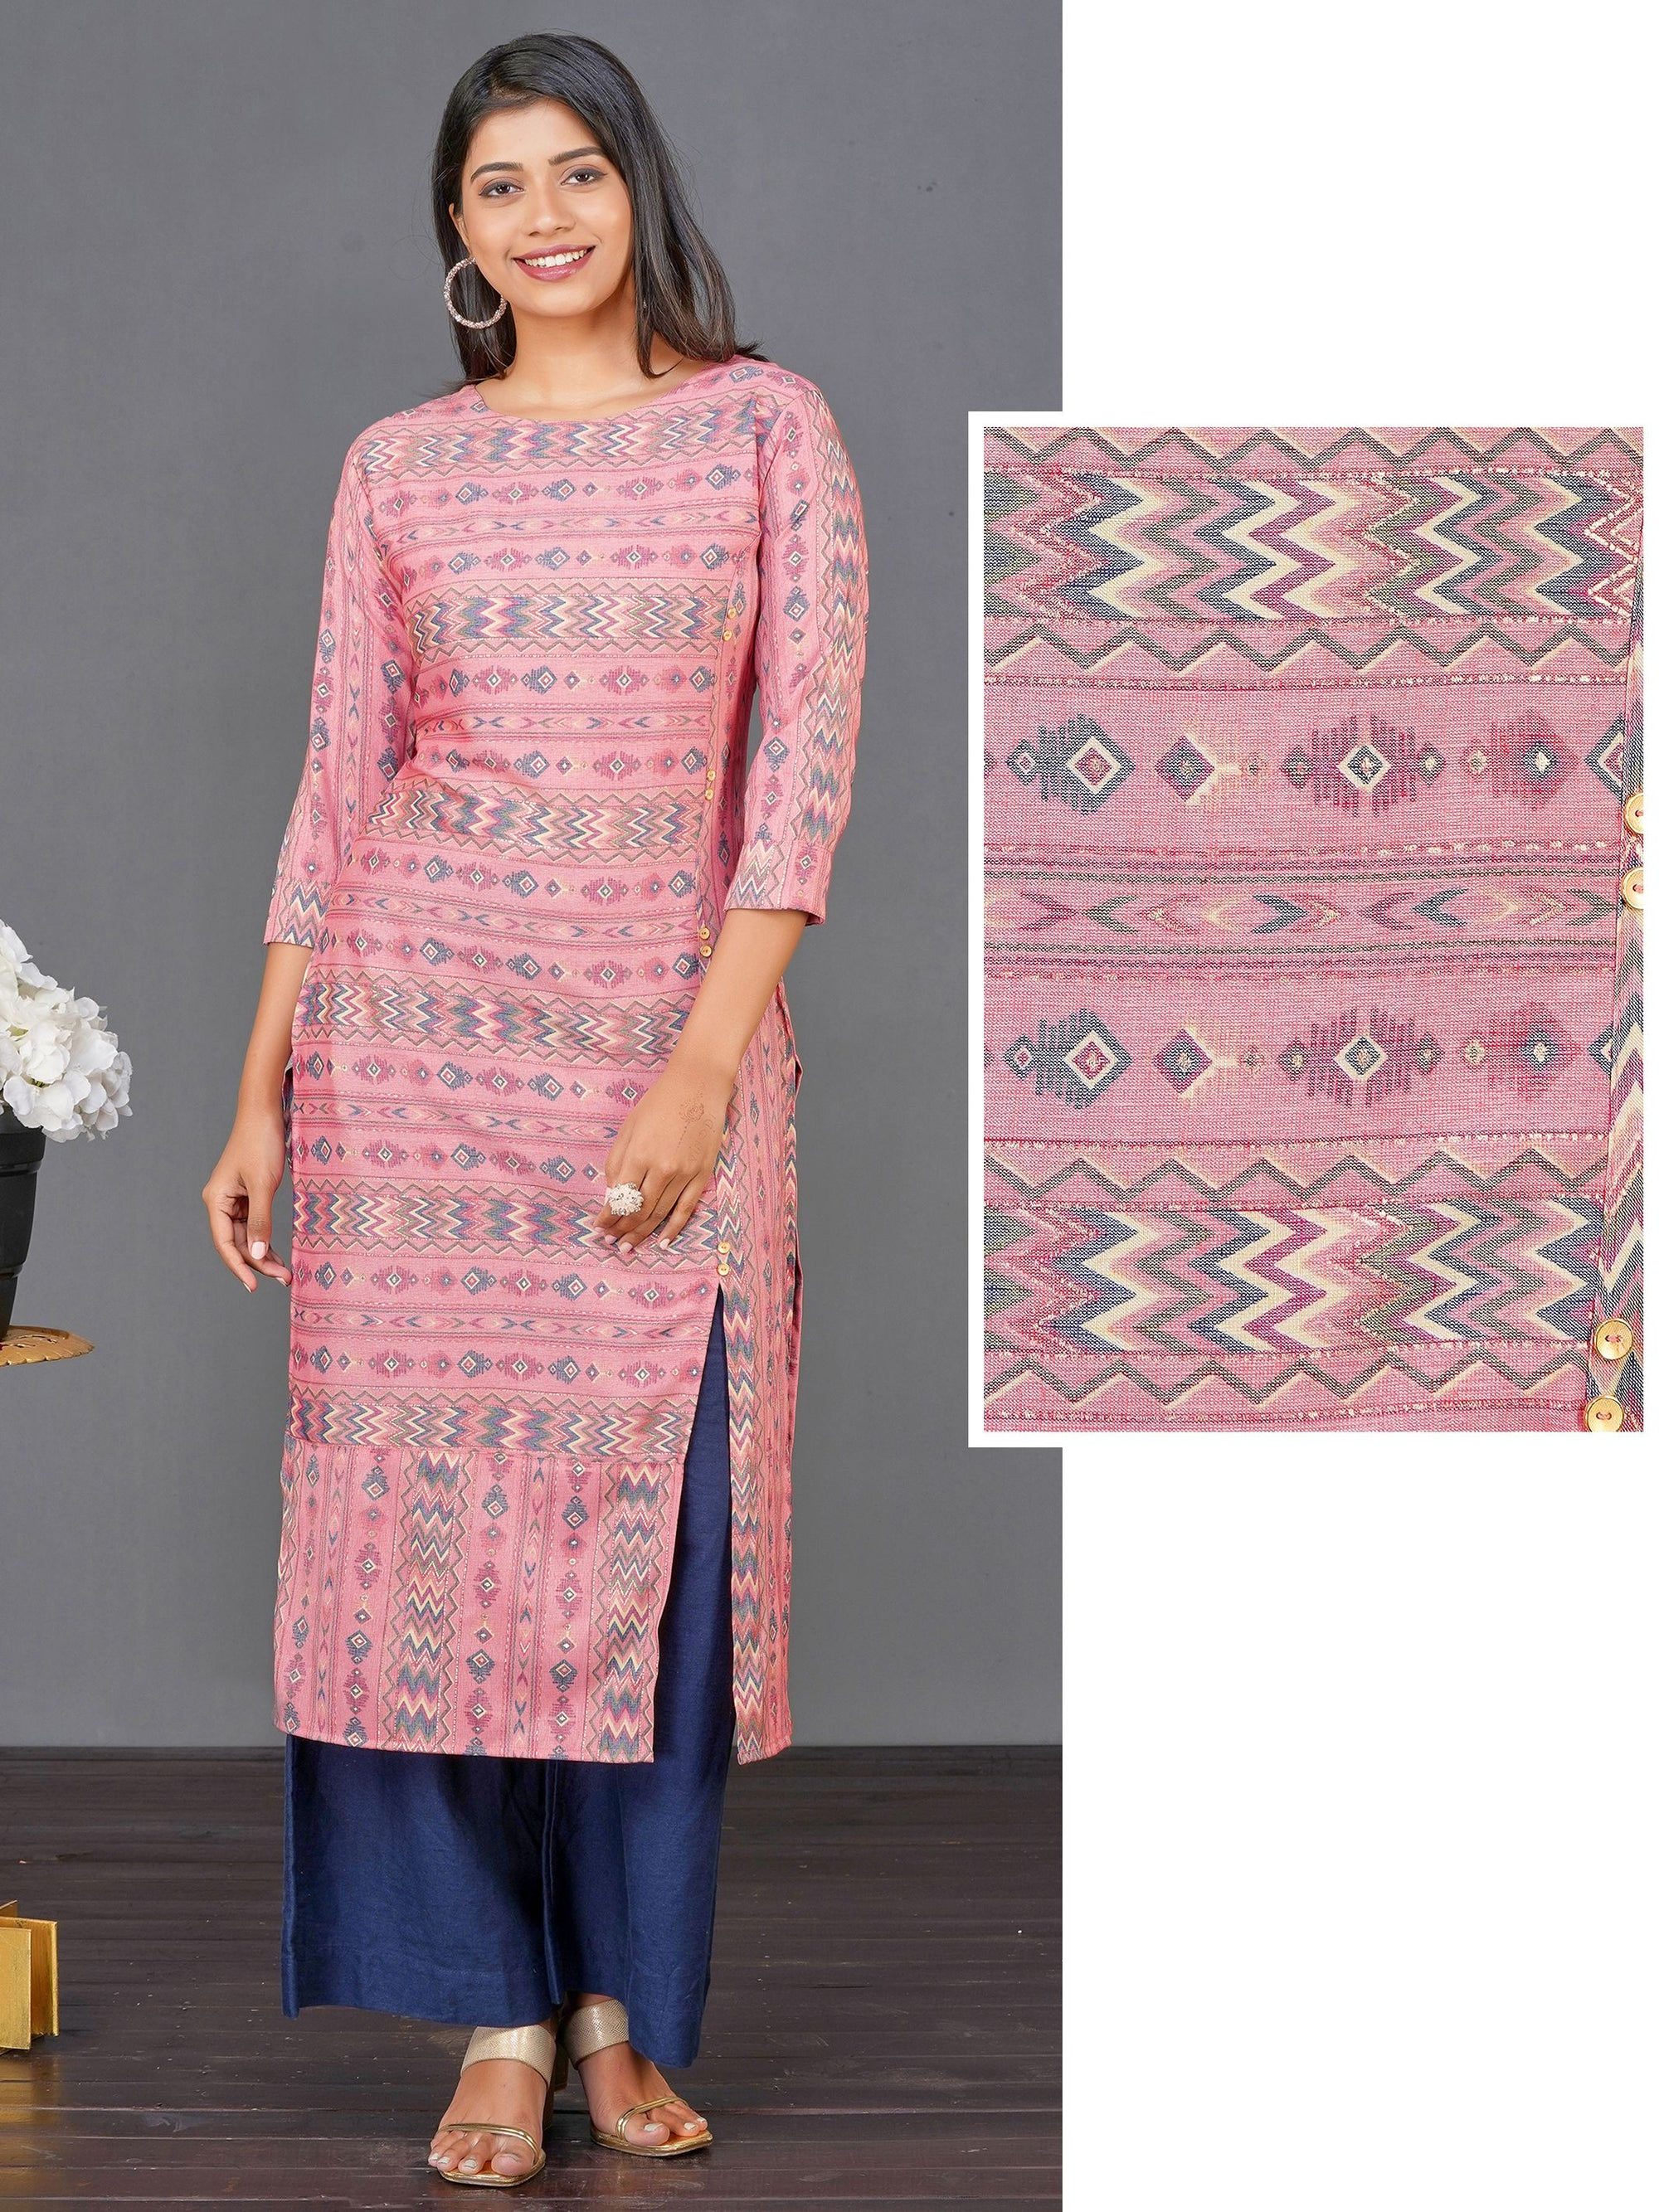 Abstract Chevron Printed Dual Toned Kurti